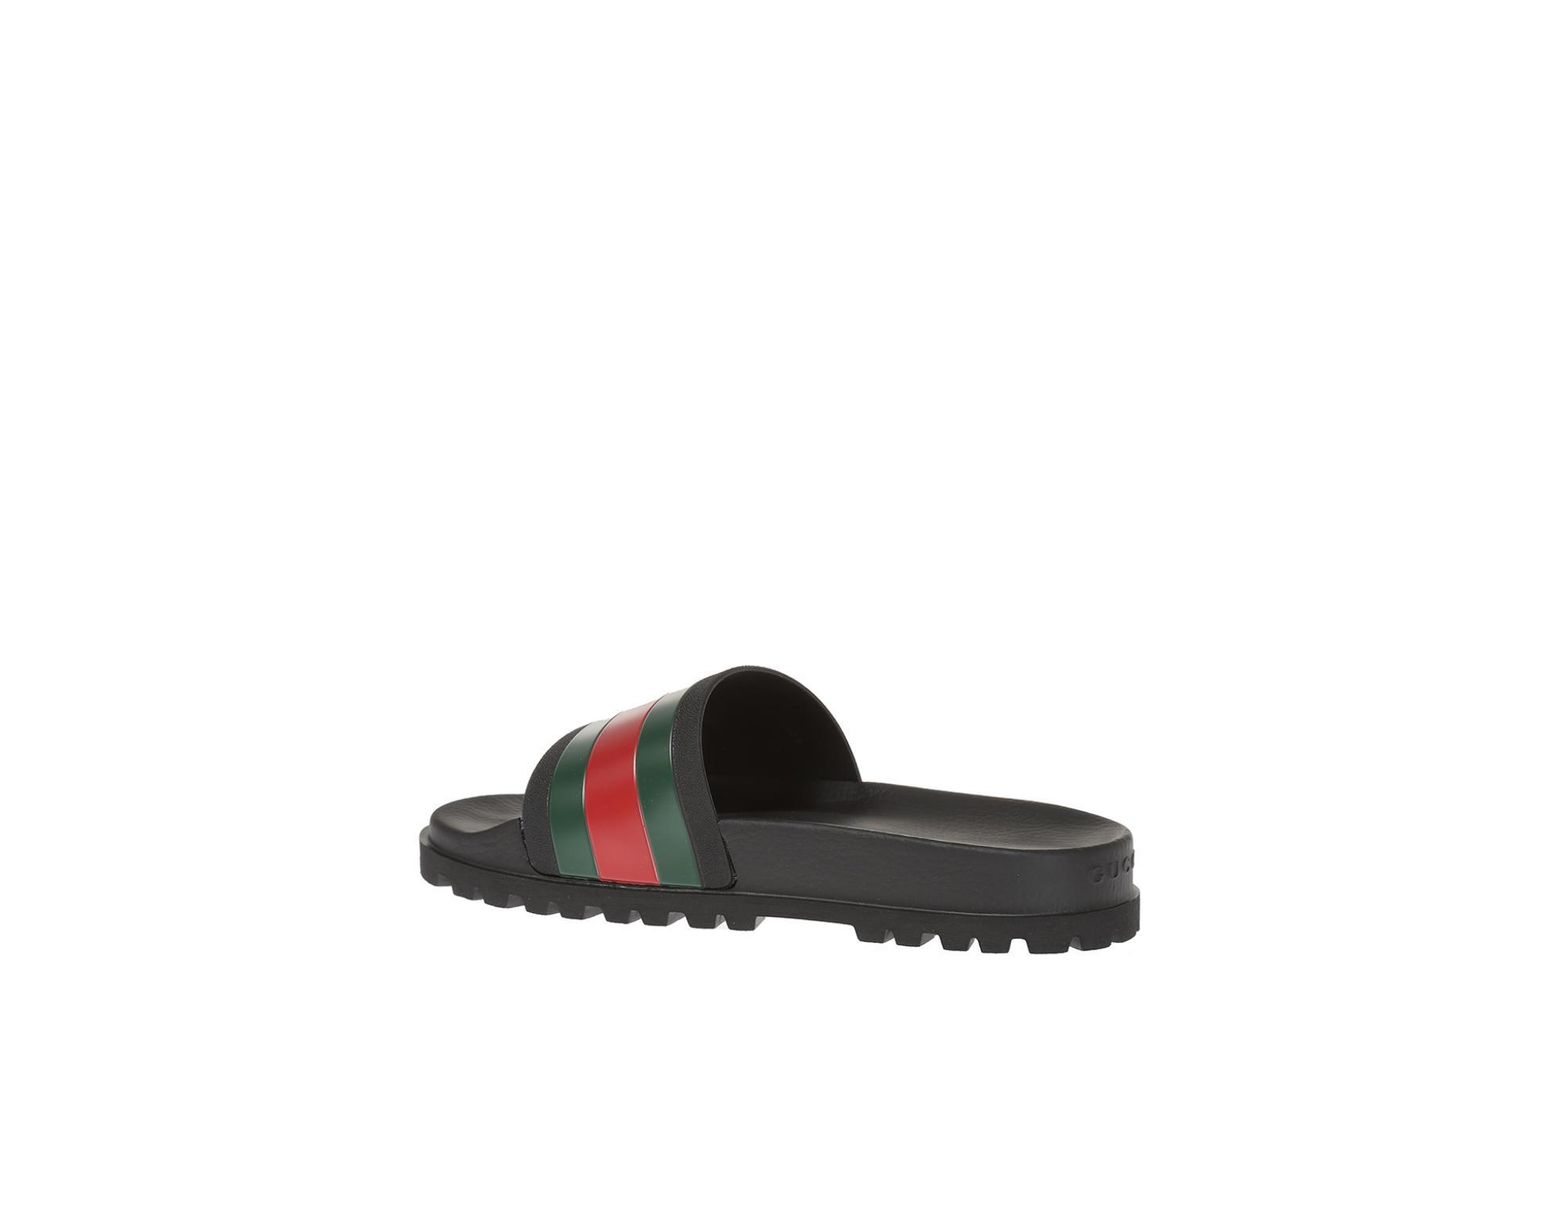 807fdae42d6 Lyst - Gucci Striped Web Rubber Slides in Black for Men - Save 30%